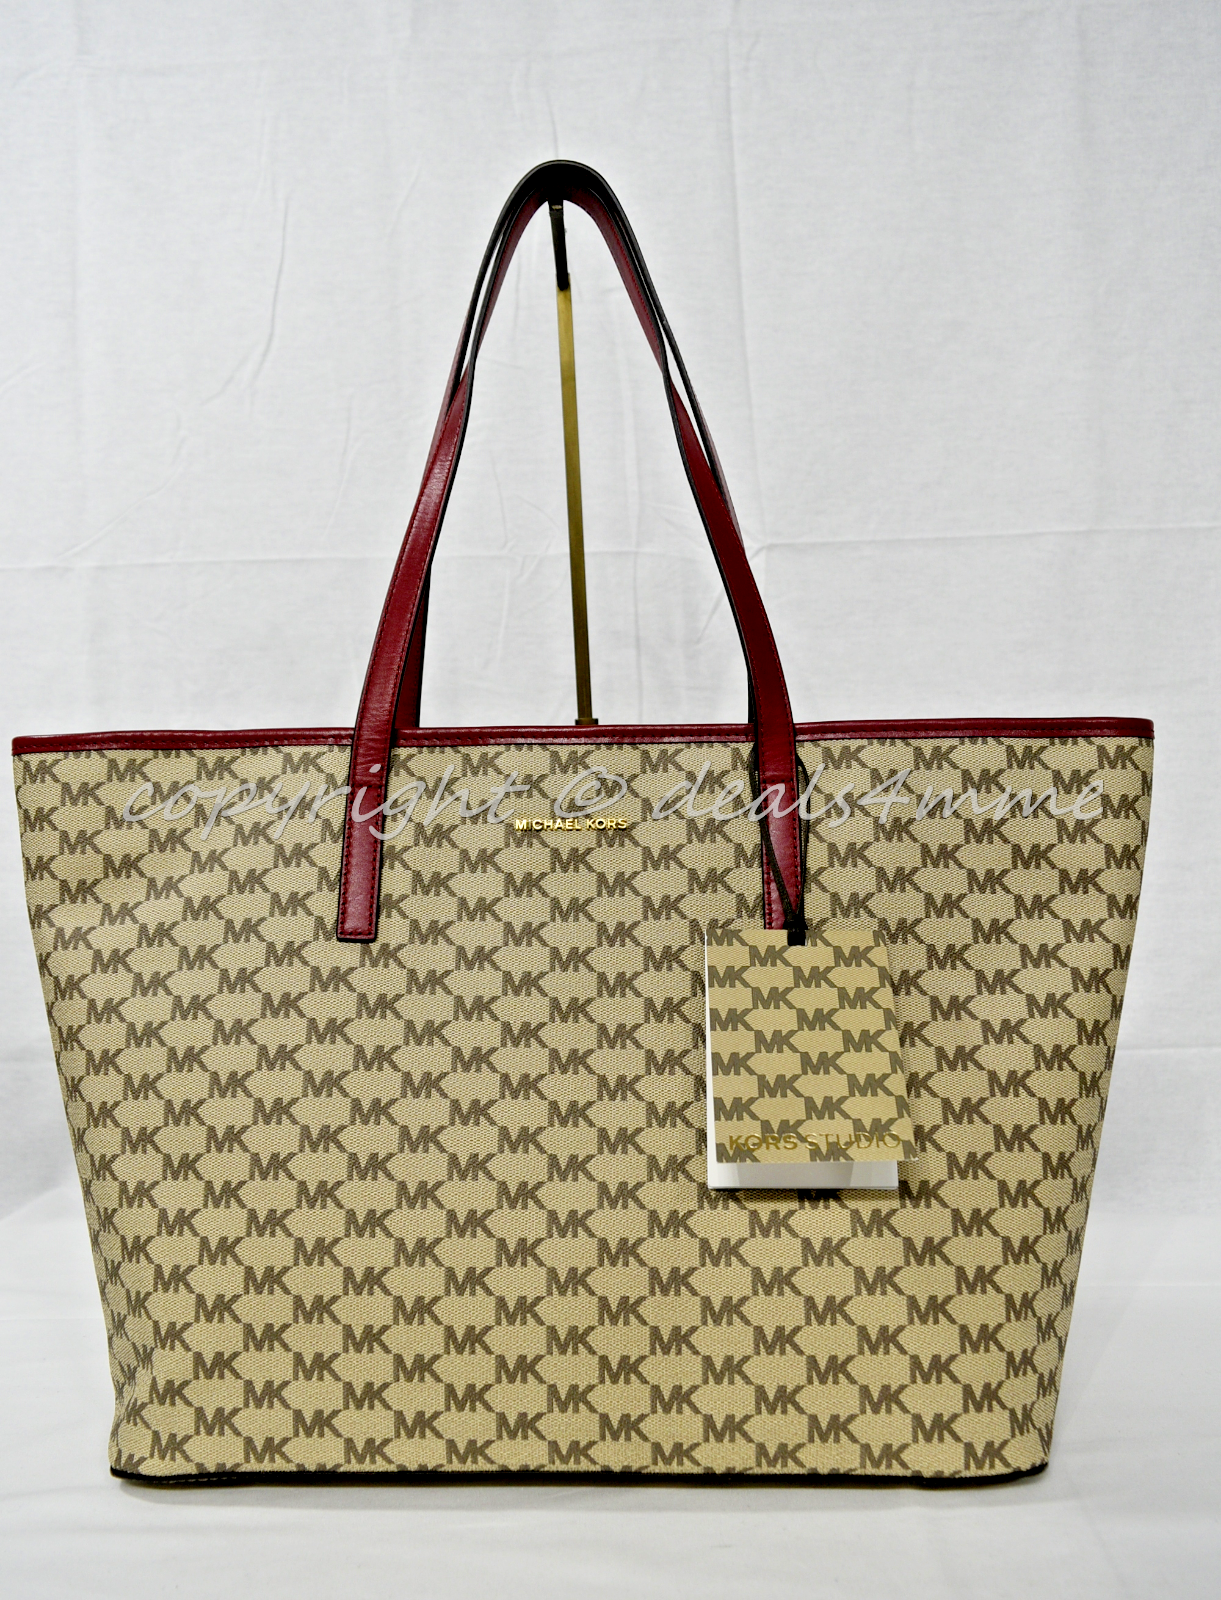 Primary image for Michael Kors Studio Heritage Signature EMRY Large Top Zip Tote. Natural Cherry